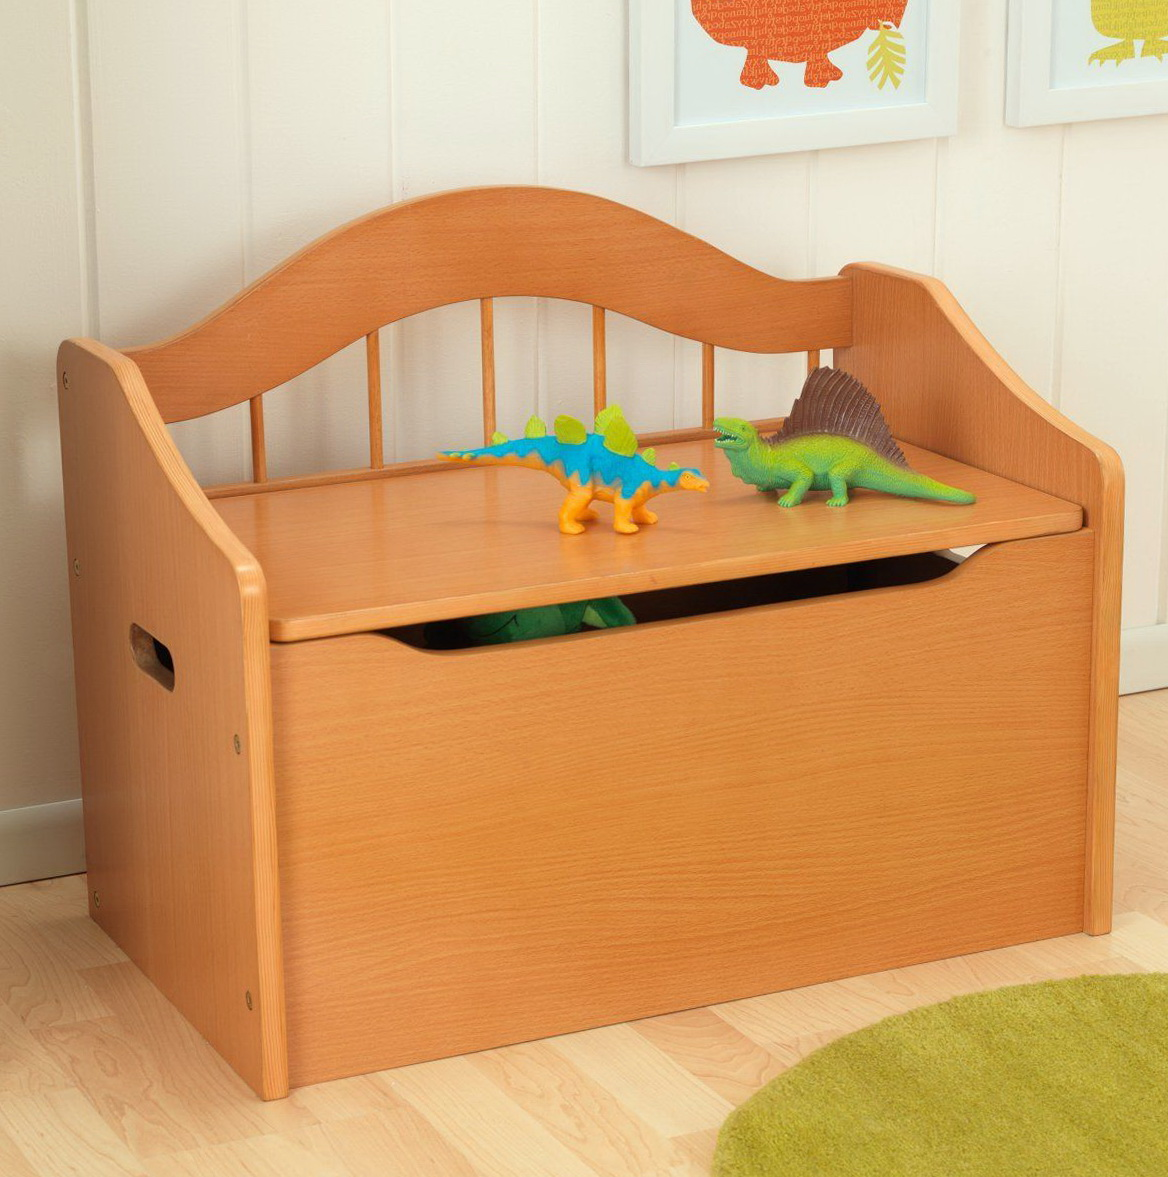 Wooden Toy Box Bench